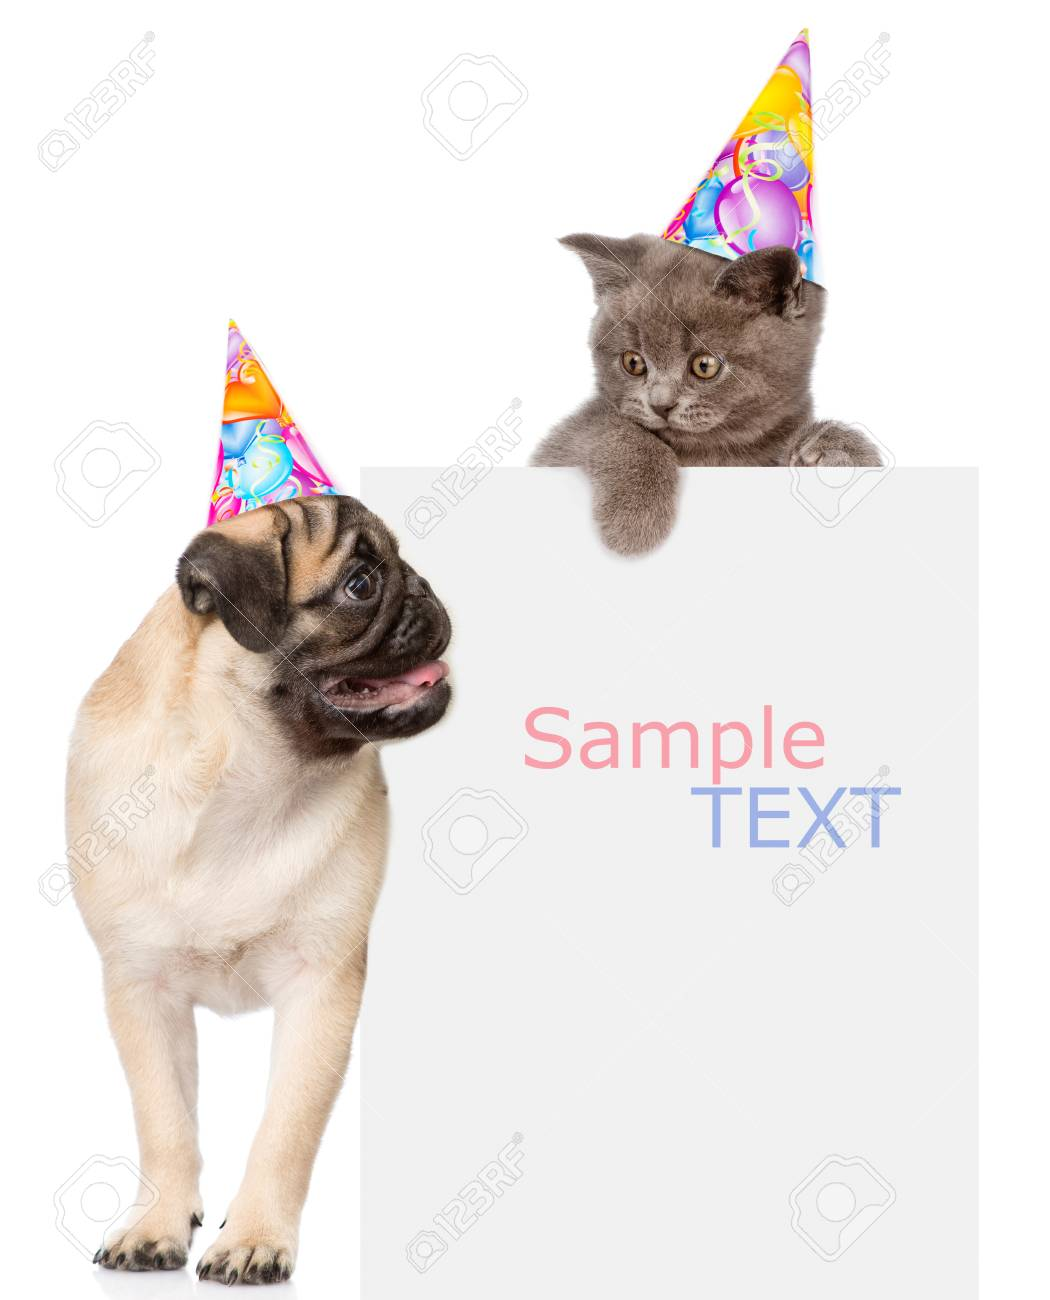 Pug Puppy And Small Kitten In Birthday Hats Above White Banner Space For Text